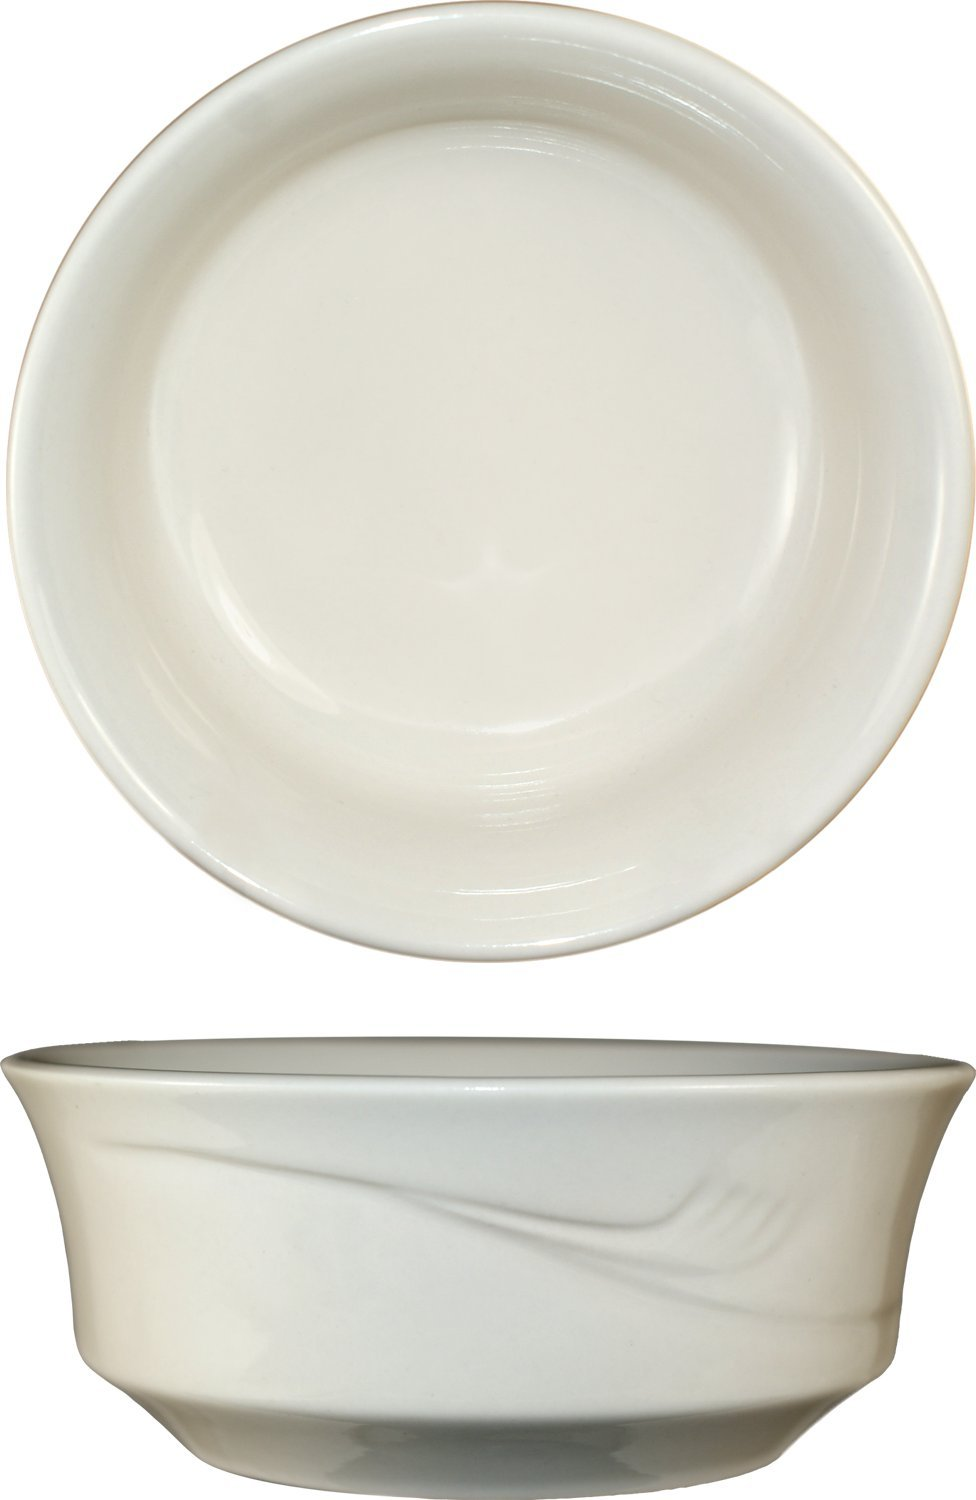 ITI - NP-15 NEWPORT  Bowl 12 Ounce  American White - 5'', 36-piece, off white, Embossed Pattern by ITI